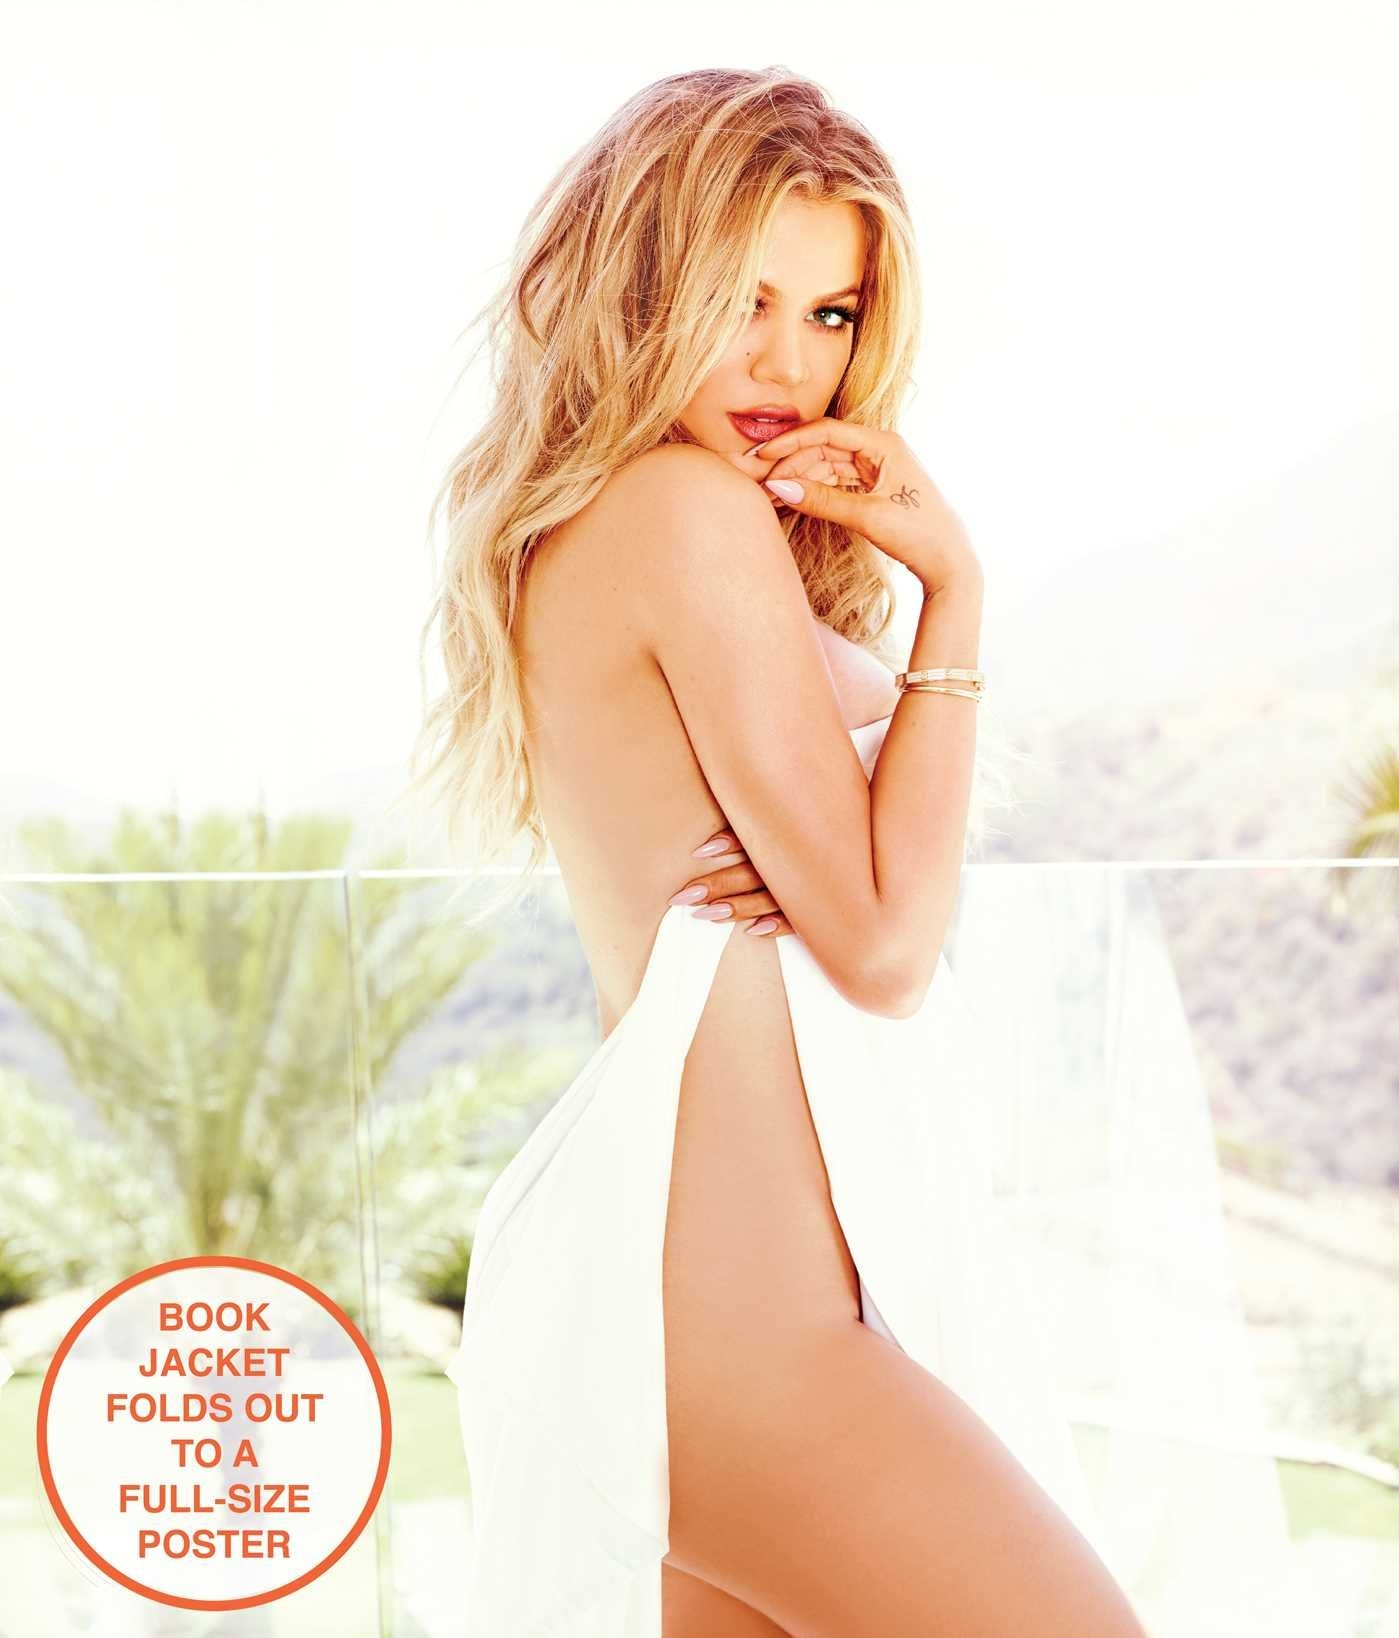 Khloe Kardashian poradnik Strong Looks Better Naked, źródło: amazon.com